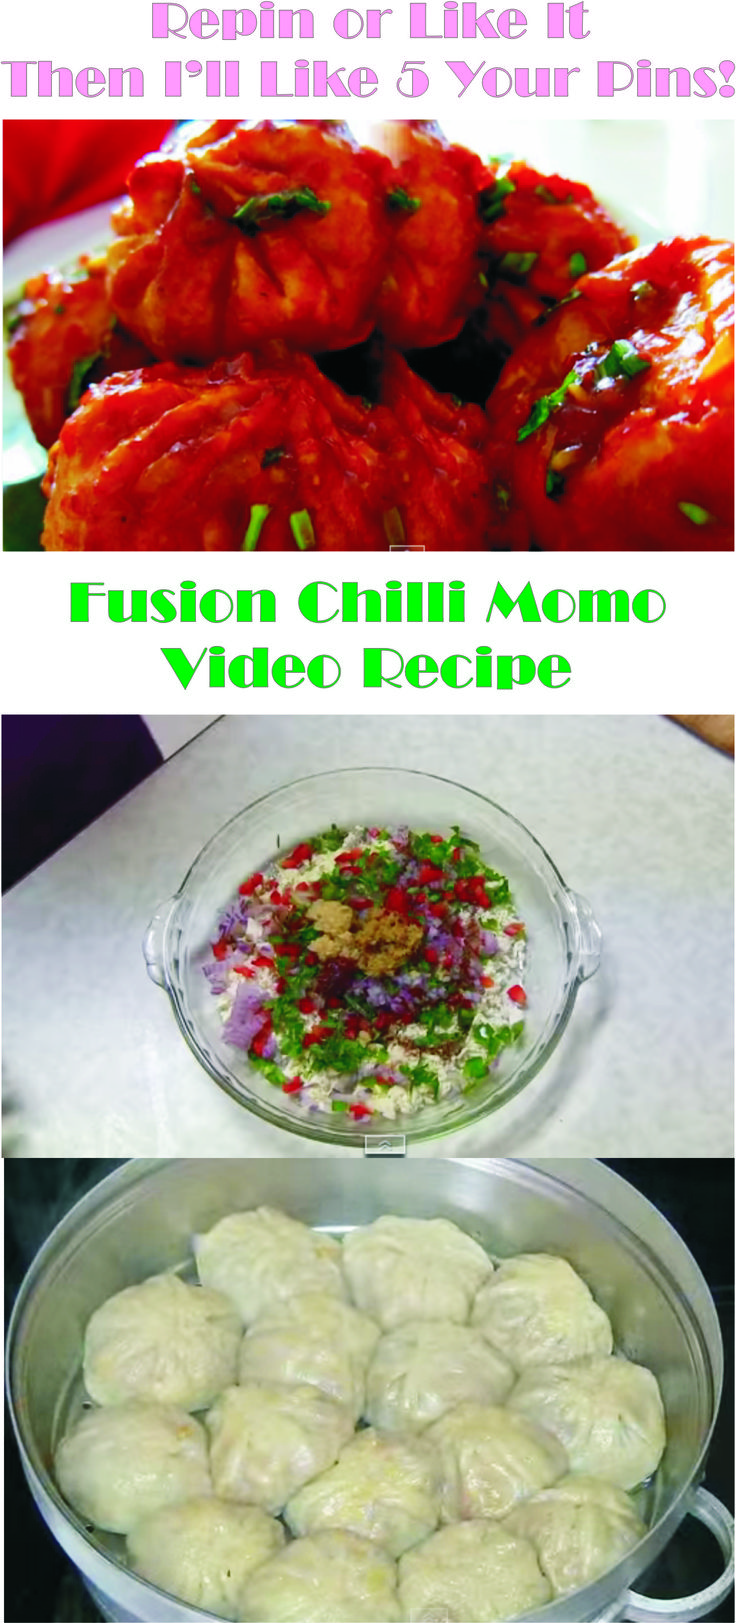 Repin Or Like It - And I'll Like 5 Your Last Pins!!! Fusion Chilli Momo Video Recipe in http://easyeatingrecipes.blogspot.com/2015/02/fusion-chilli-momo-video-recipe.html